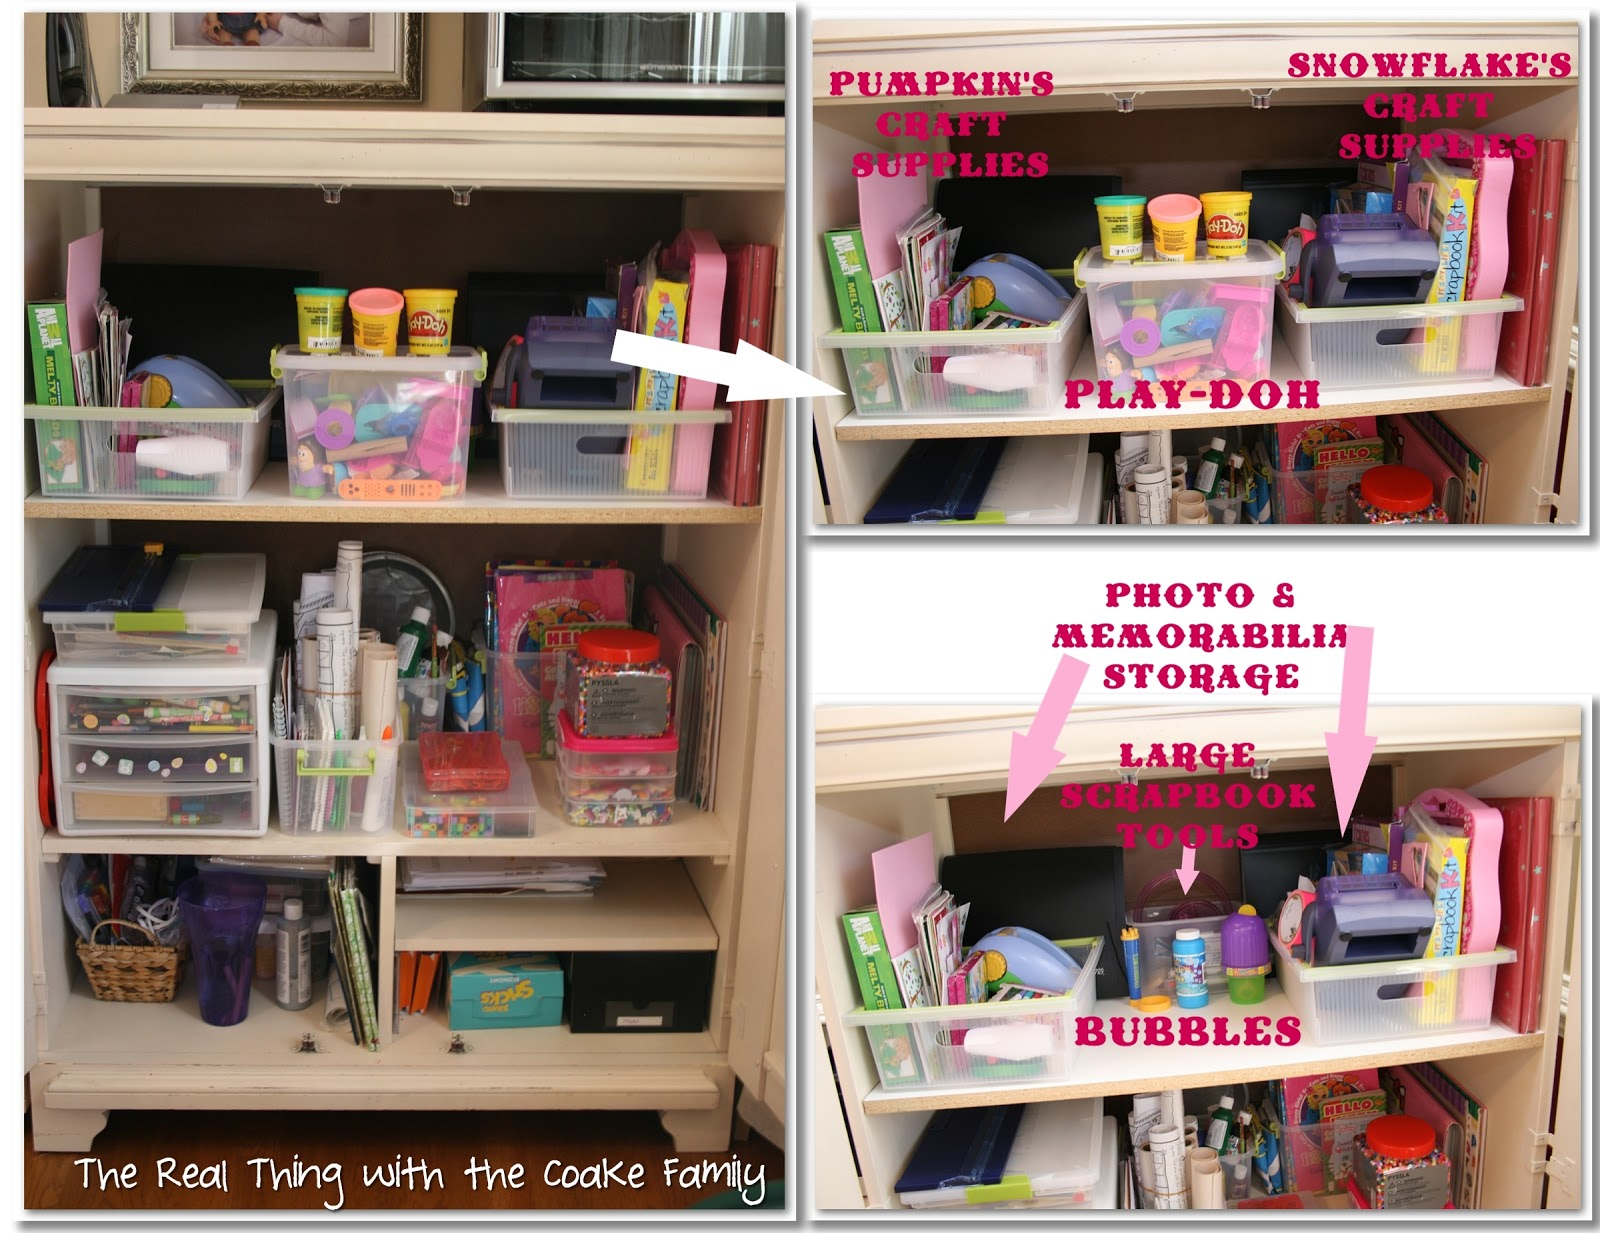 Organizing Ideas: Crafts & Office - The Real Thing with the Coake Family